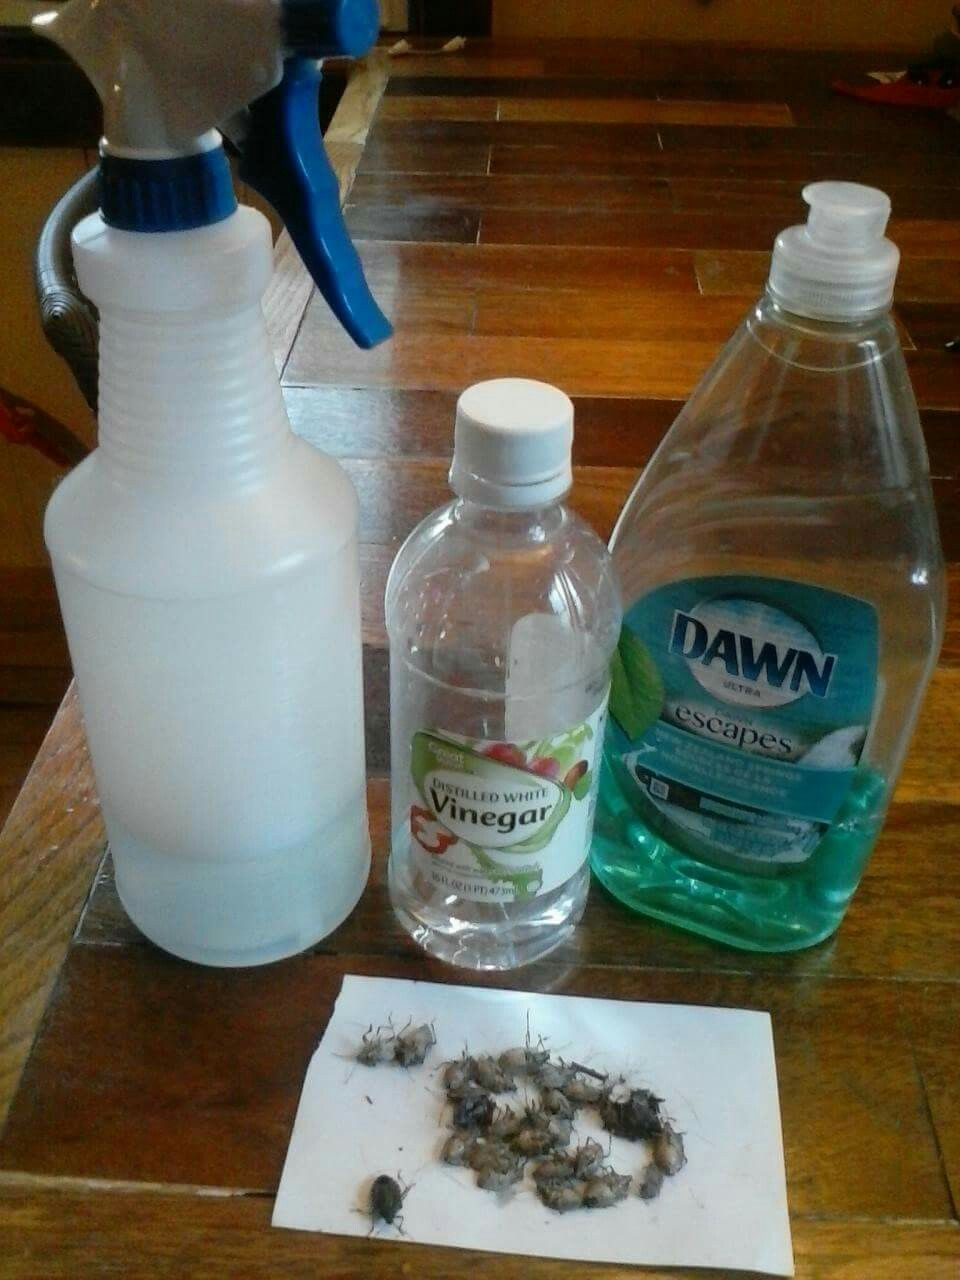 Killing stink bugs This concoction is effective!! Must add